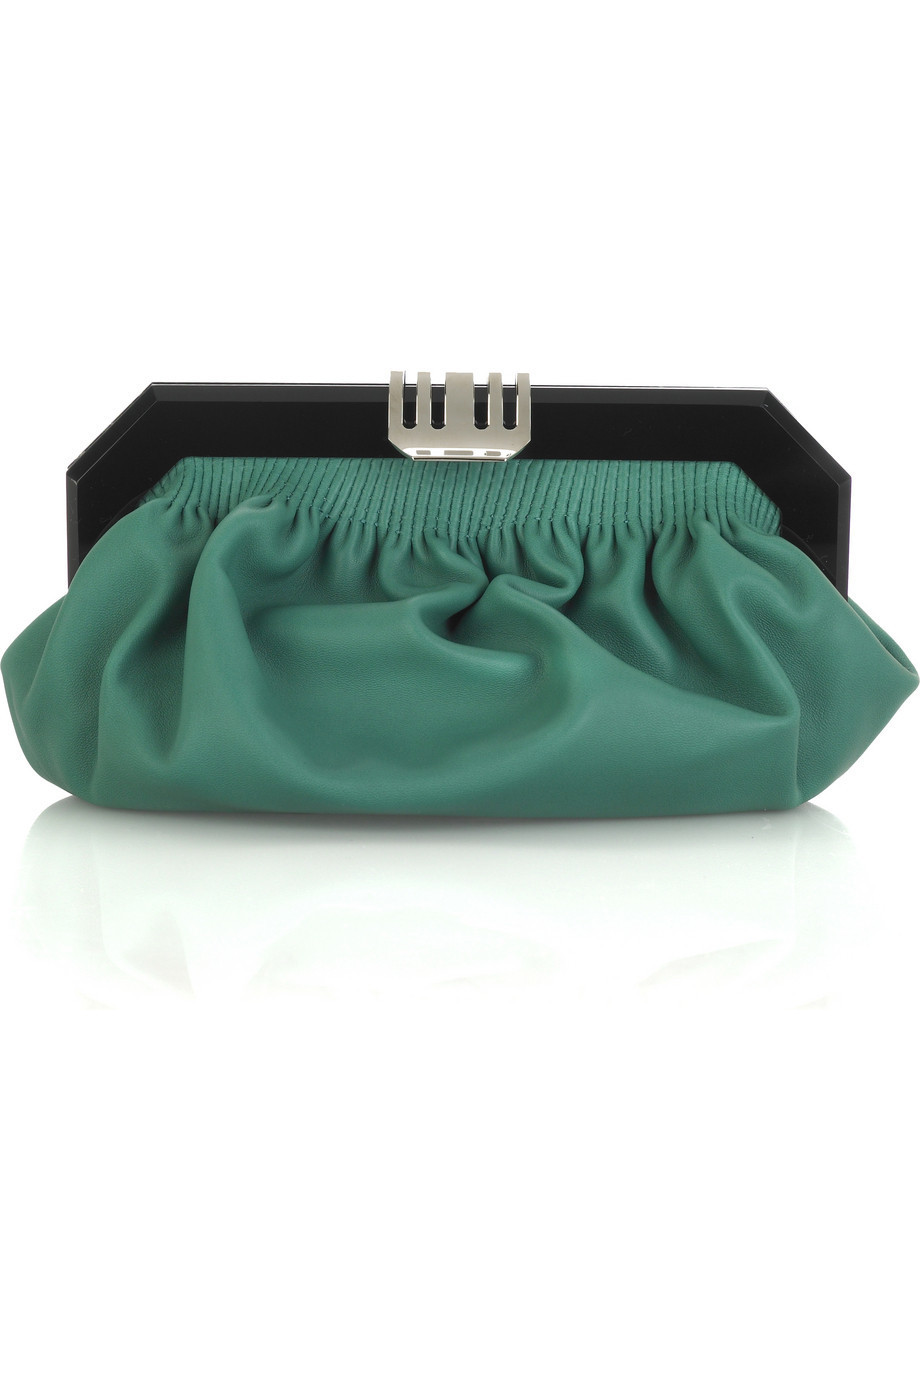 Marni Leather pouchette clutch  | NET-A-PORTER.COM from net-a-porter.com